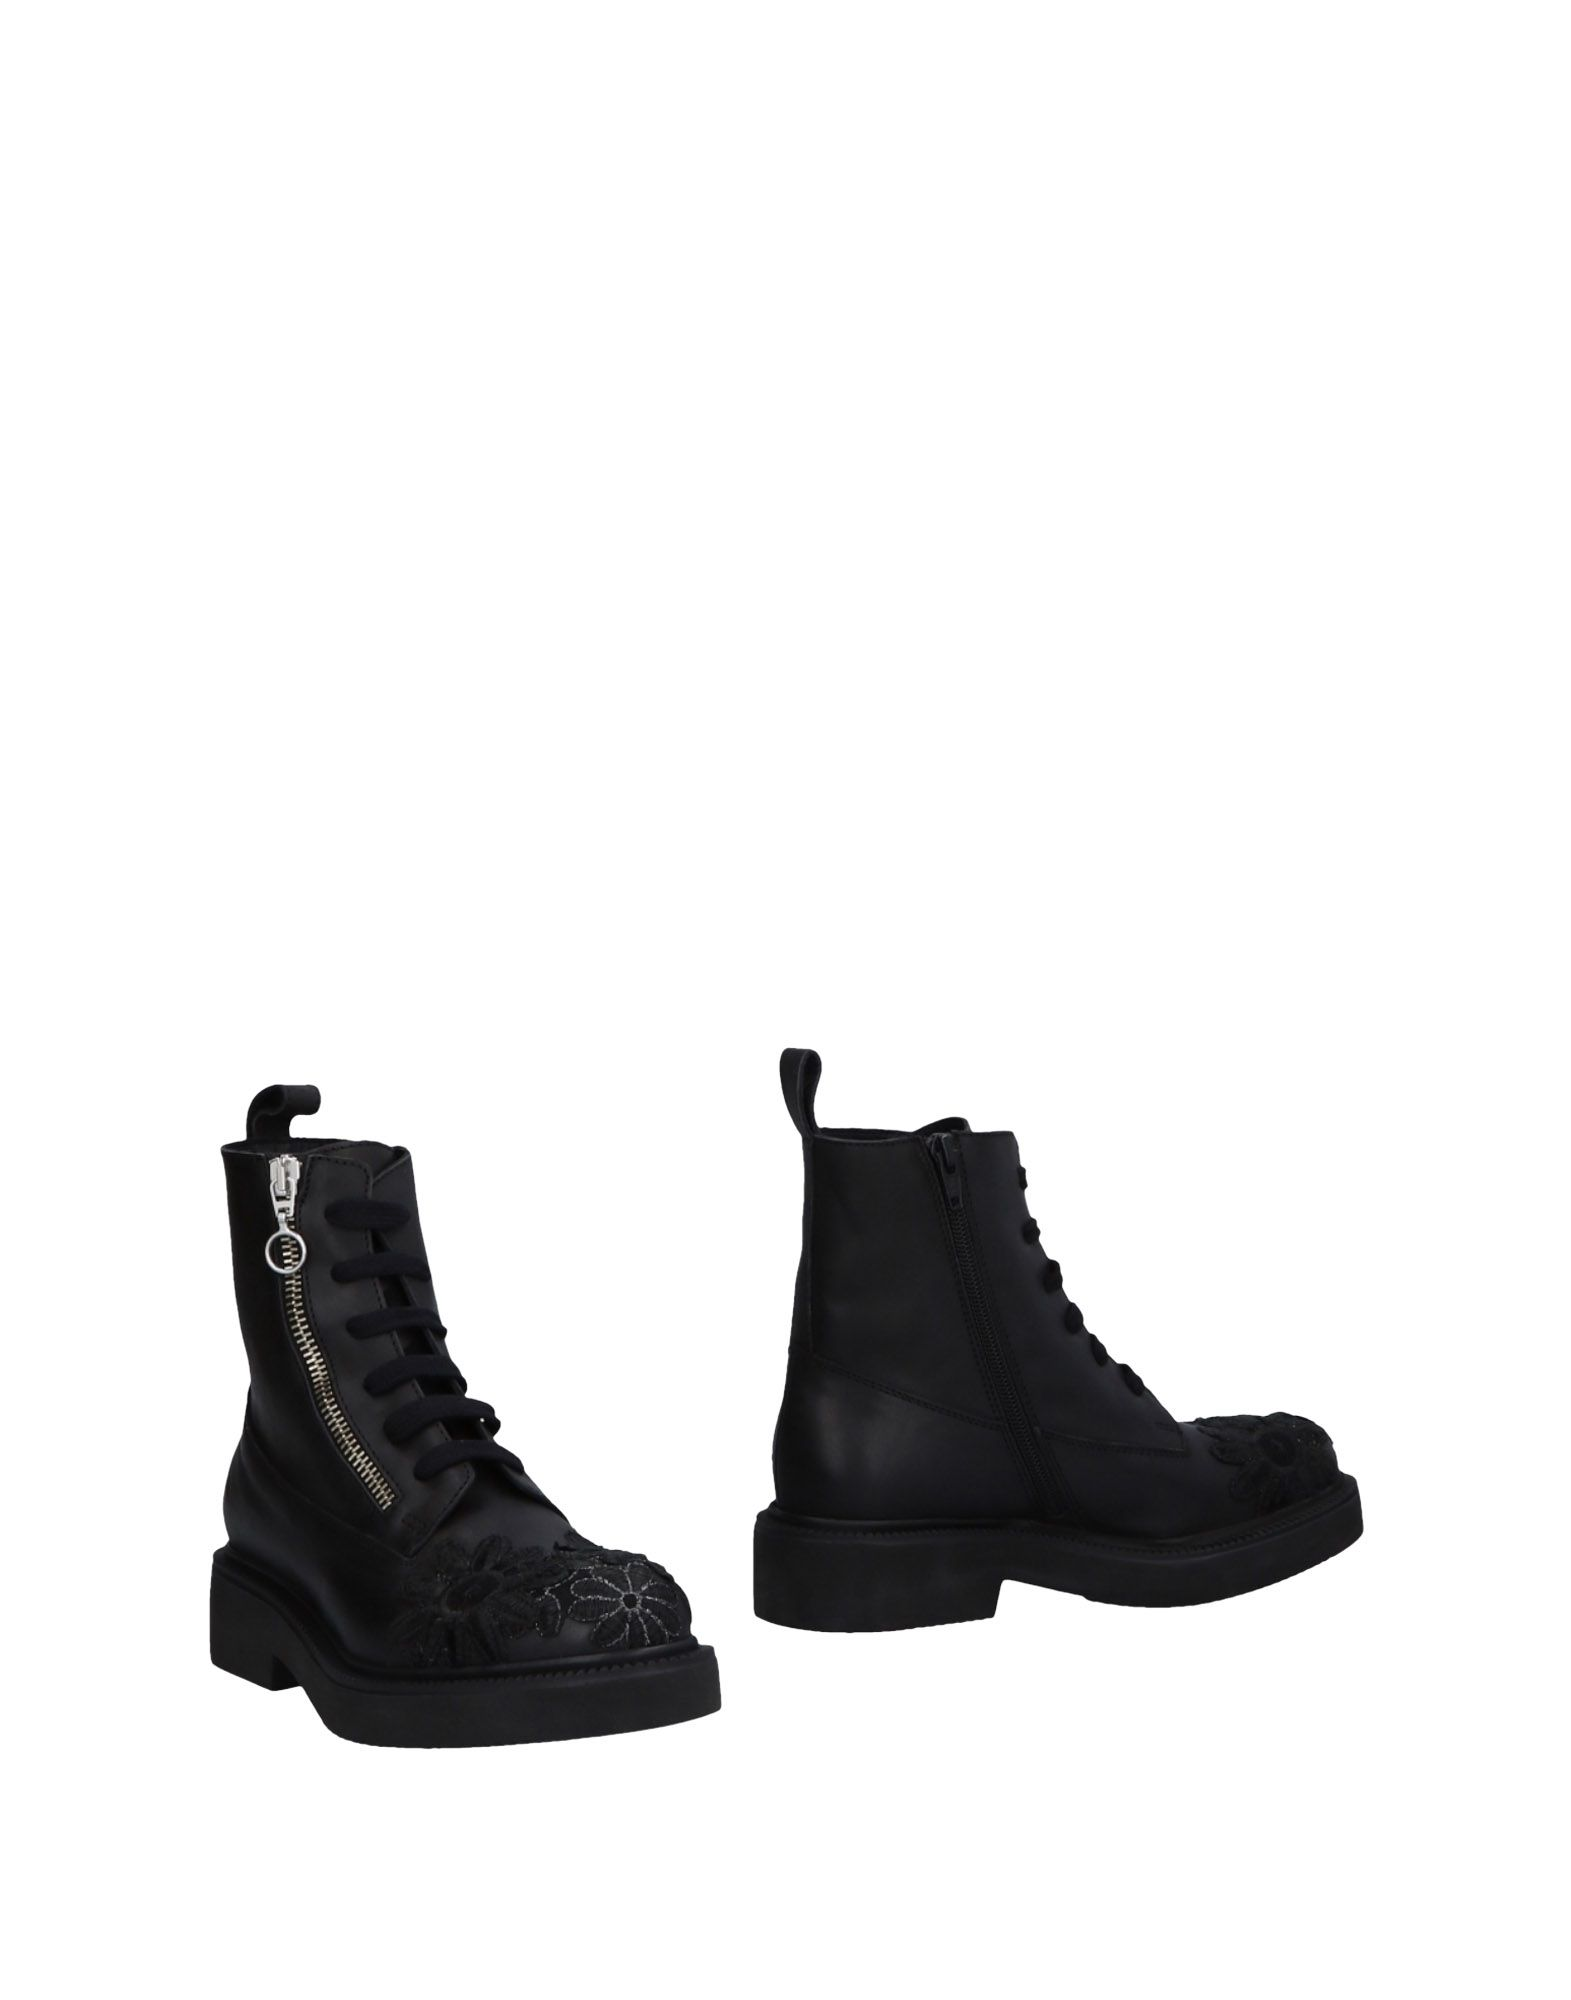 Giancarlo Paoli Ankle Boot - Women Giancarlo on Paoli Ankle Boots online on Giancarlo  Canada - 11477257DW 839ad7